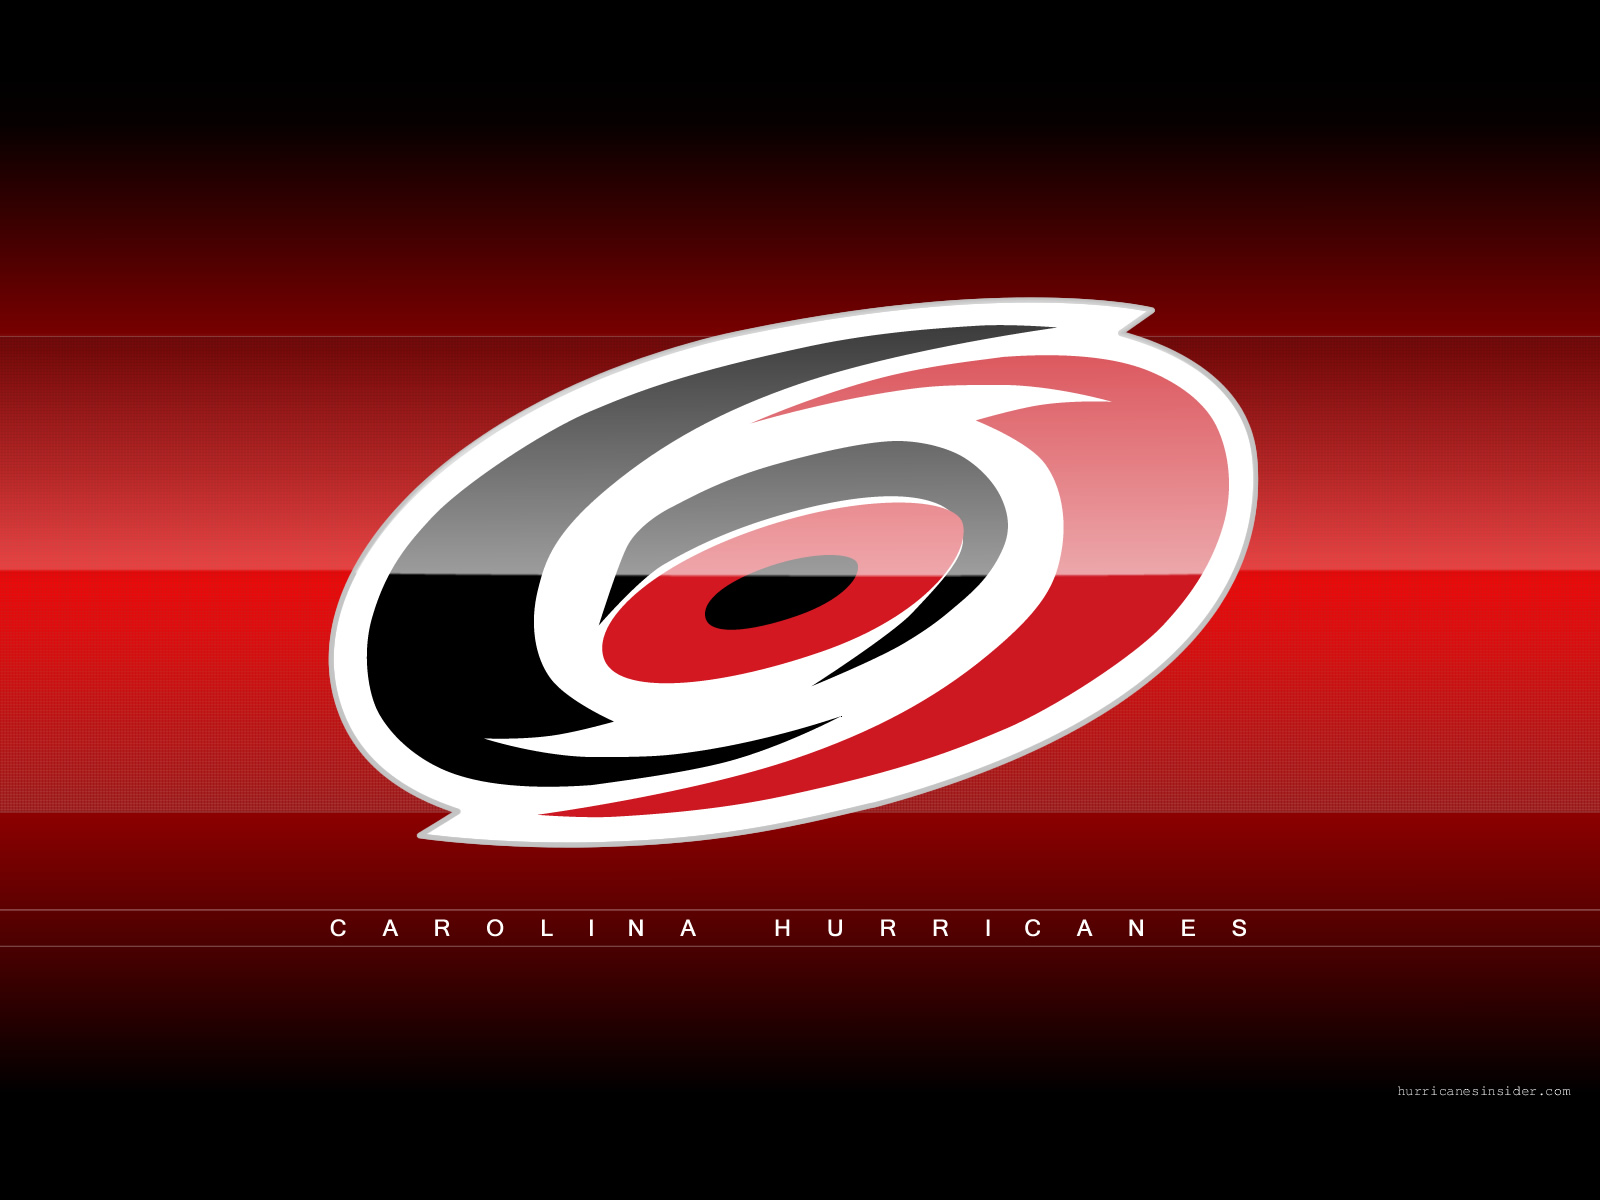 Carolina Hurricanes | Carolina Sports Network